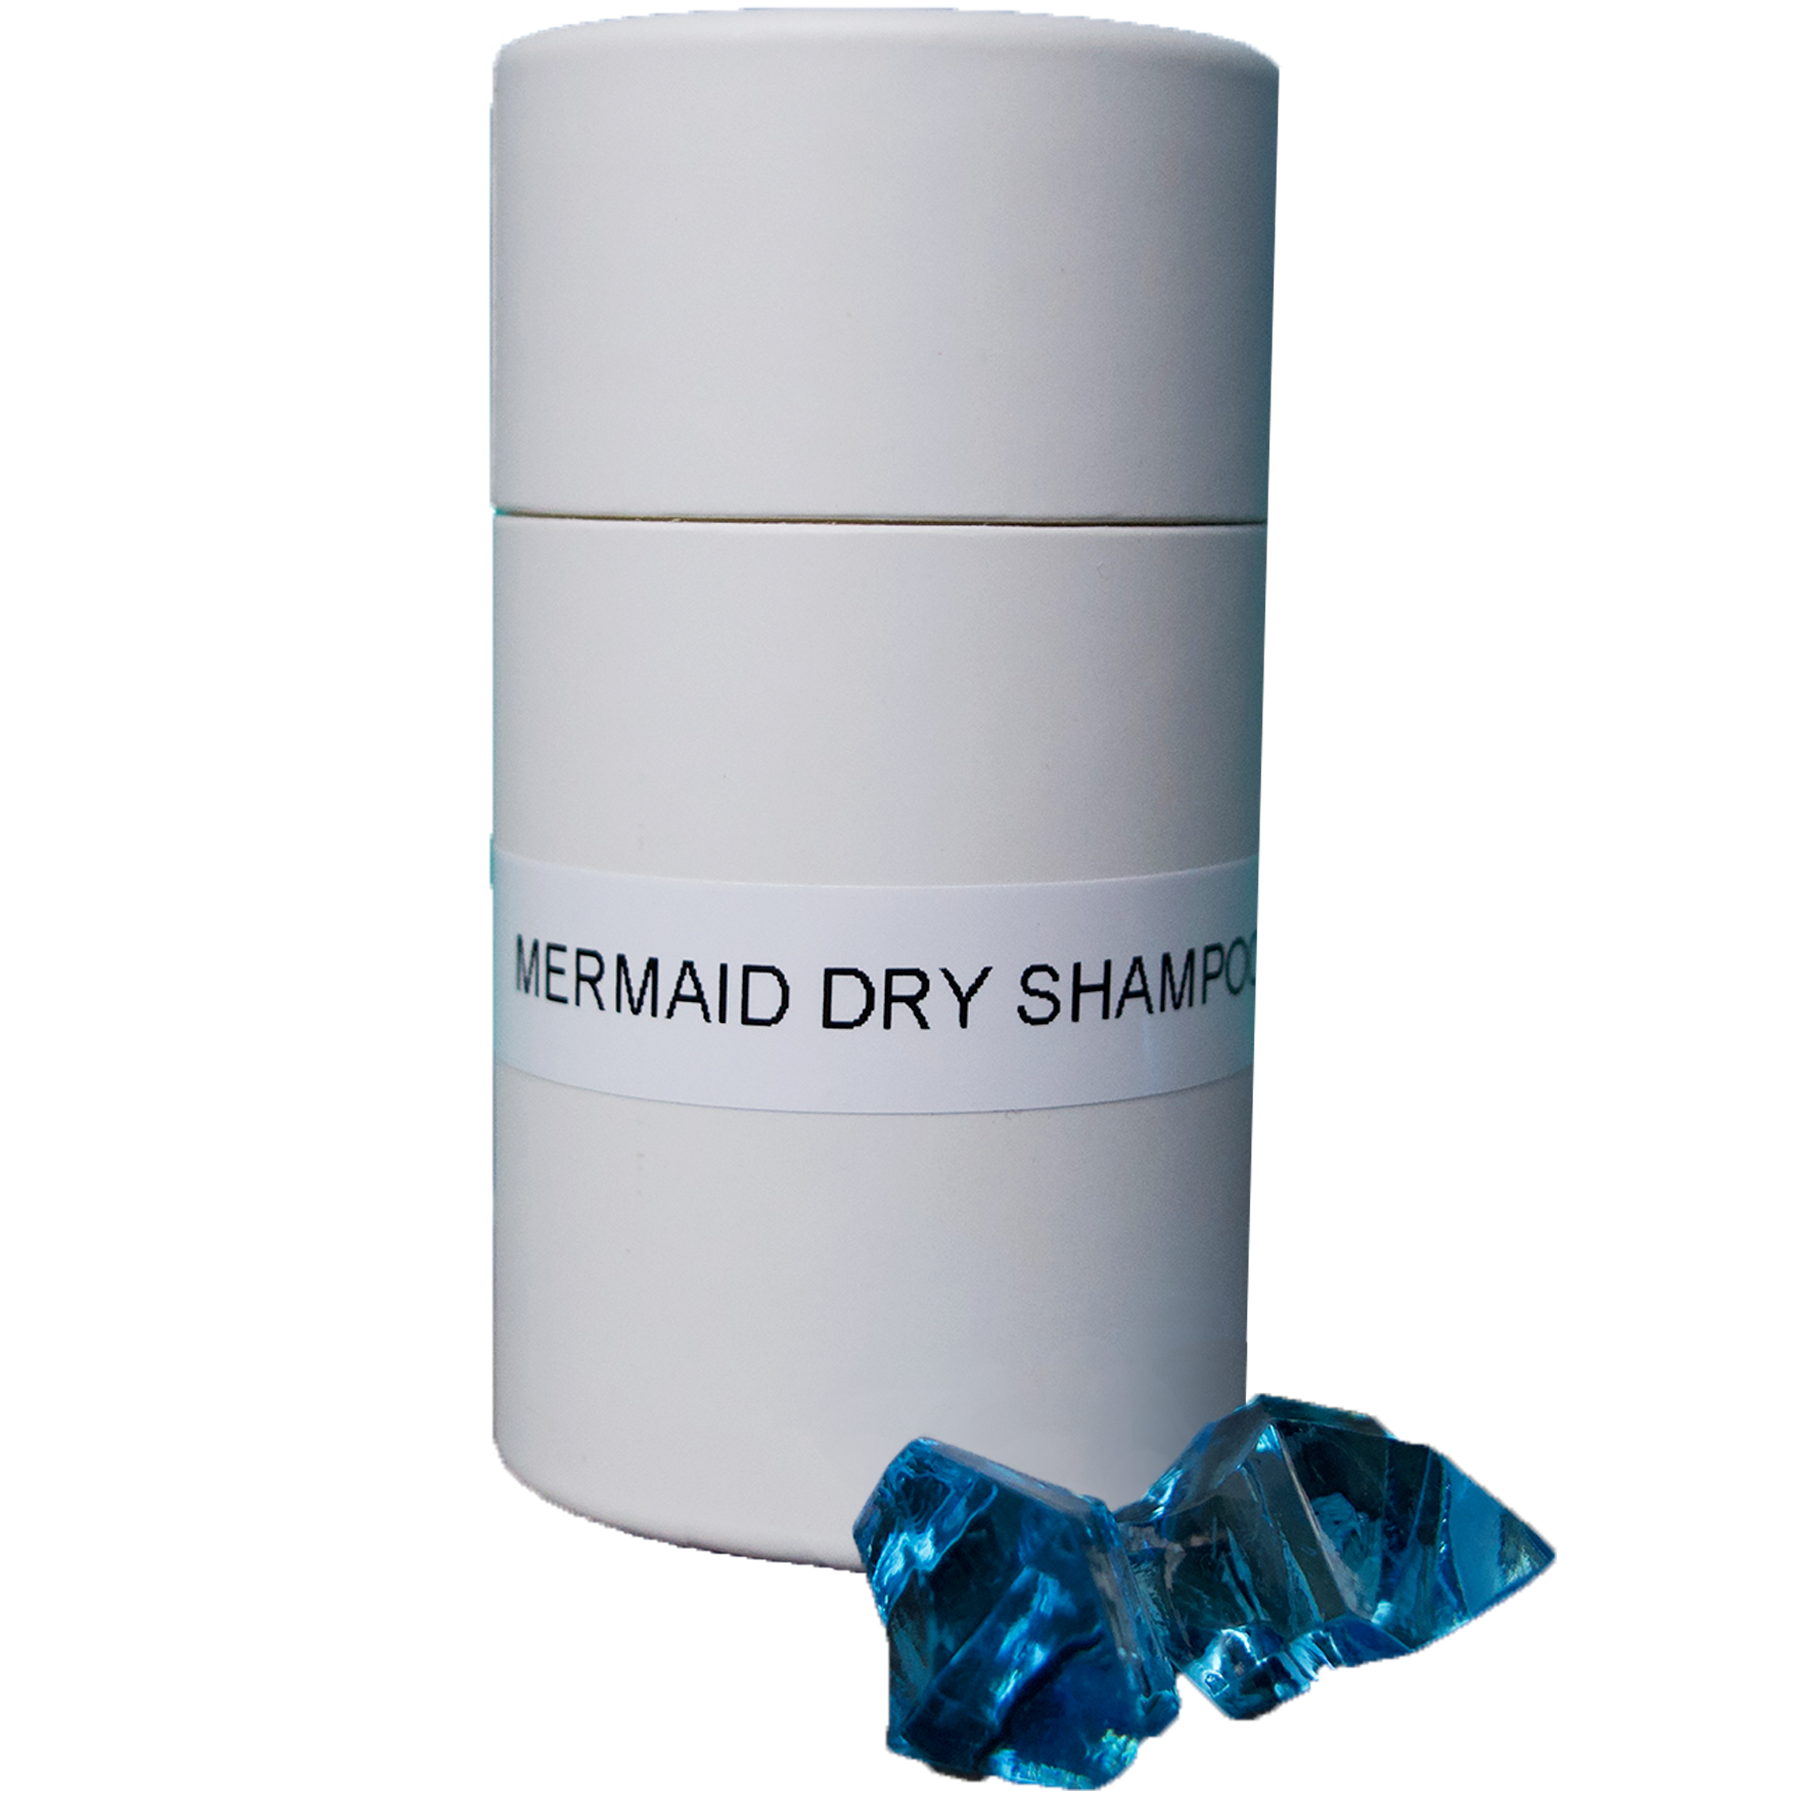 Mermaid Dry Shampoo ~ magic dust